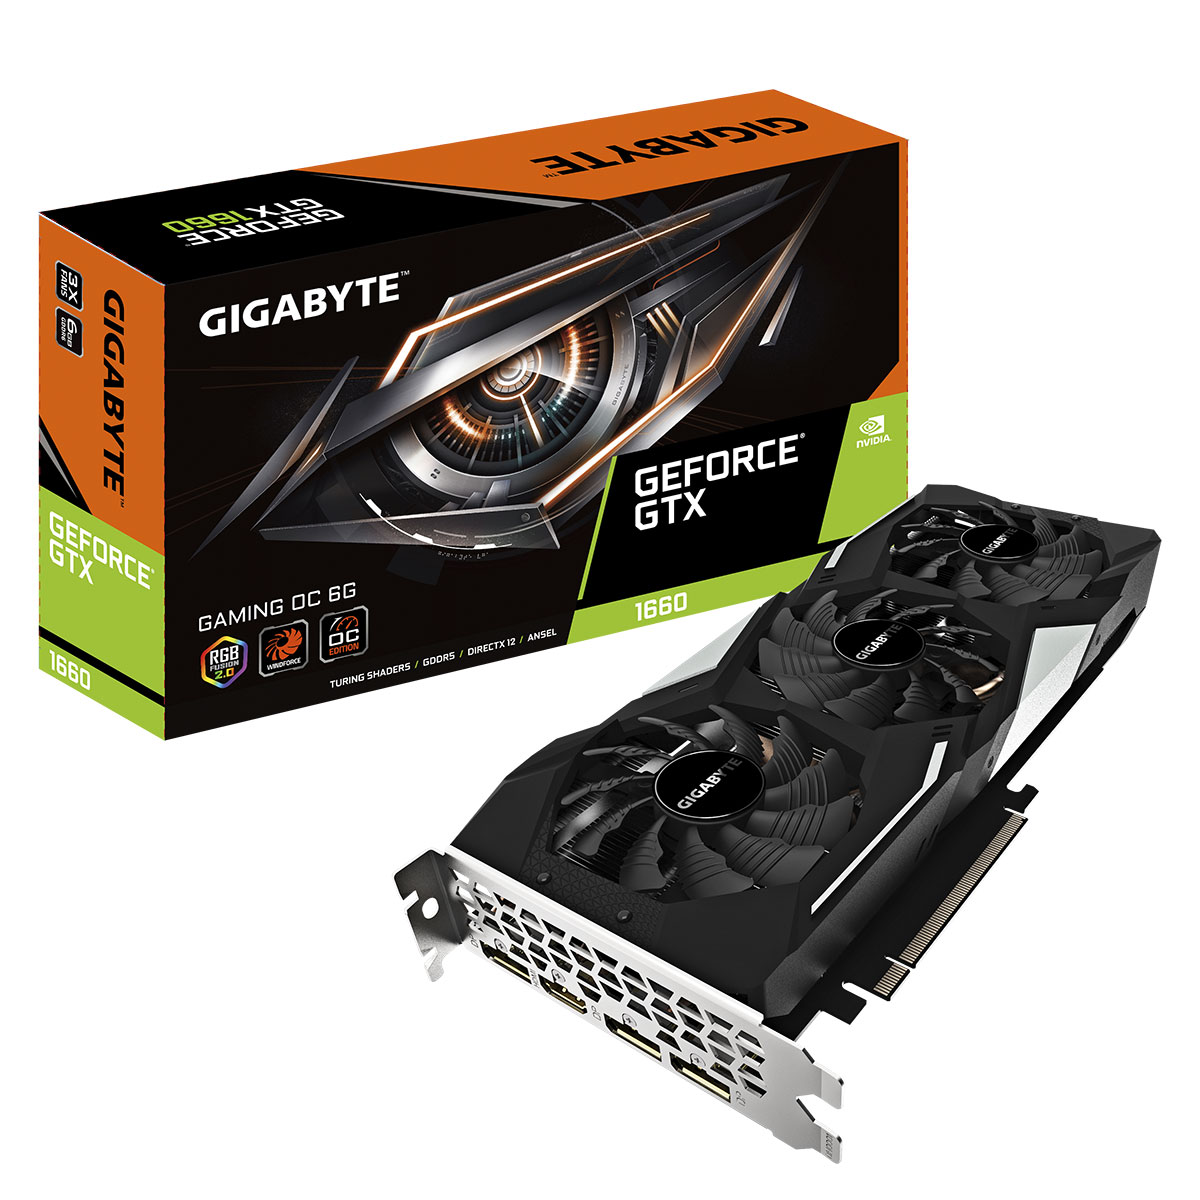 GeForce GTX 1660 Gaming OC 6G (GV-N1660GAMING OC-6GD) - Achat / Vente Carte graphique sur Picata.fr - 0